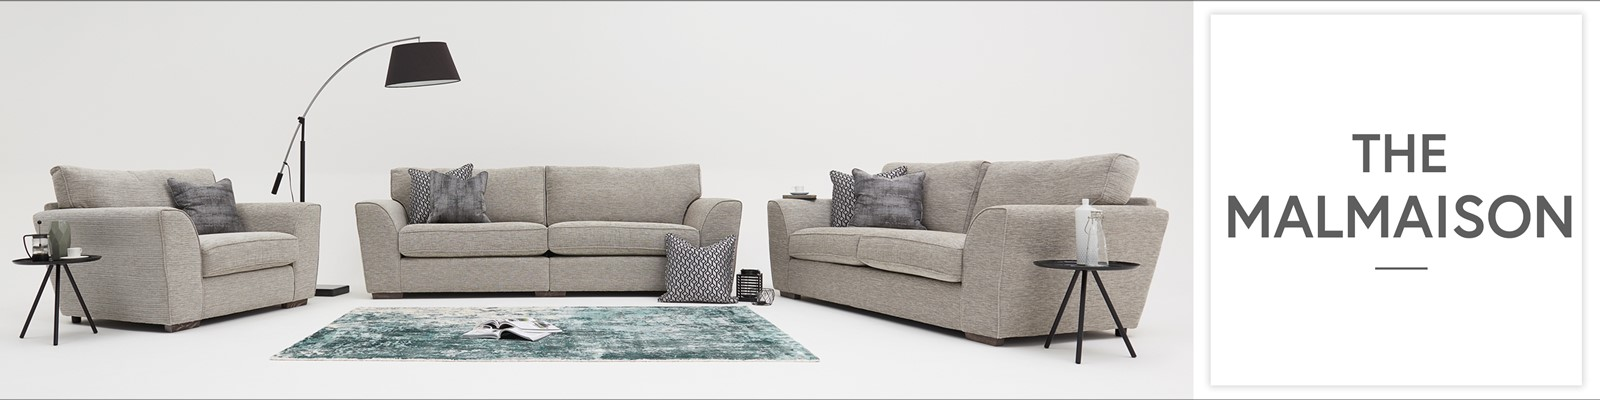 Sterling Sofas Glasgow Refil Sofa